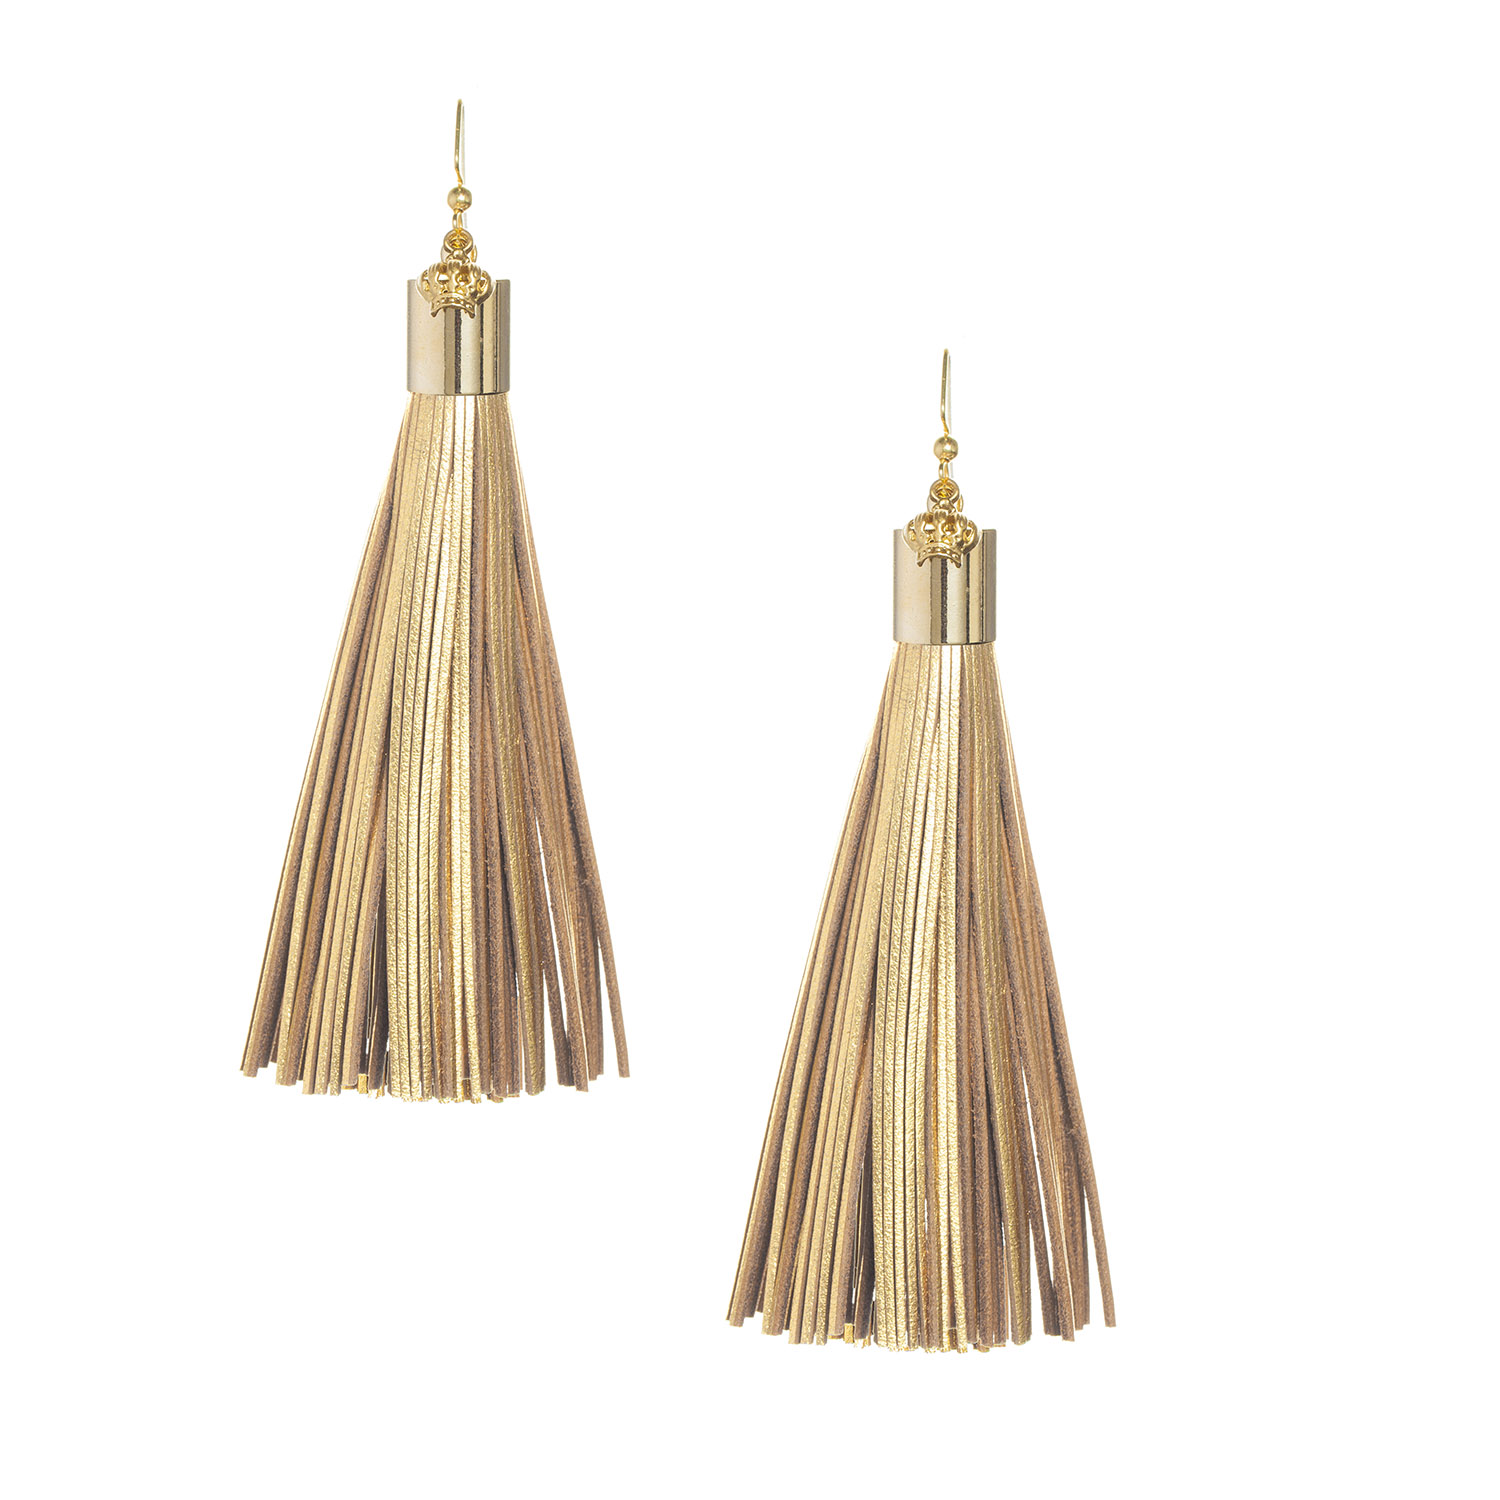 Camel Leather Tassel Earrings with Gold Cap